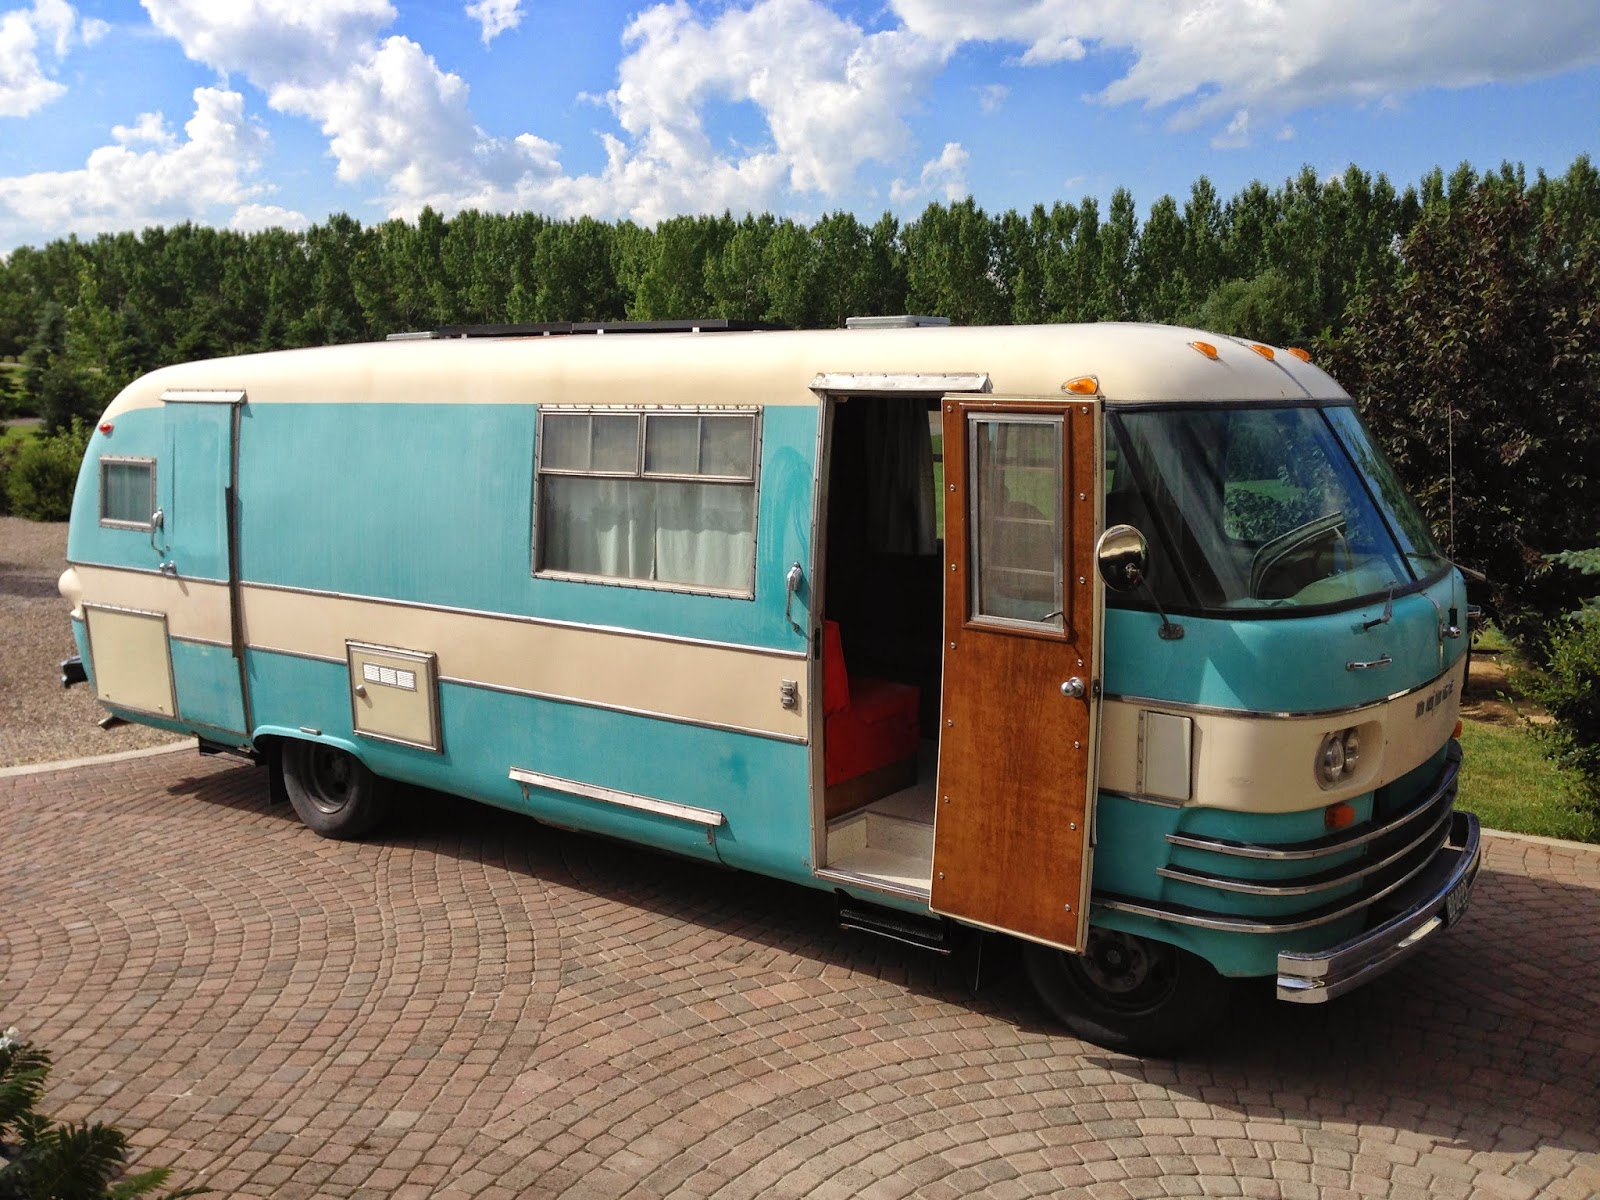 Myrtle The 1964 Travco Motorhome